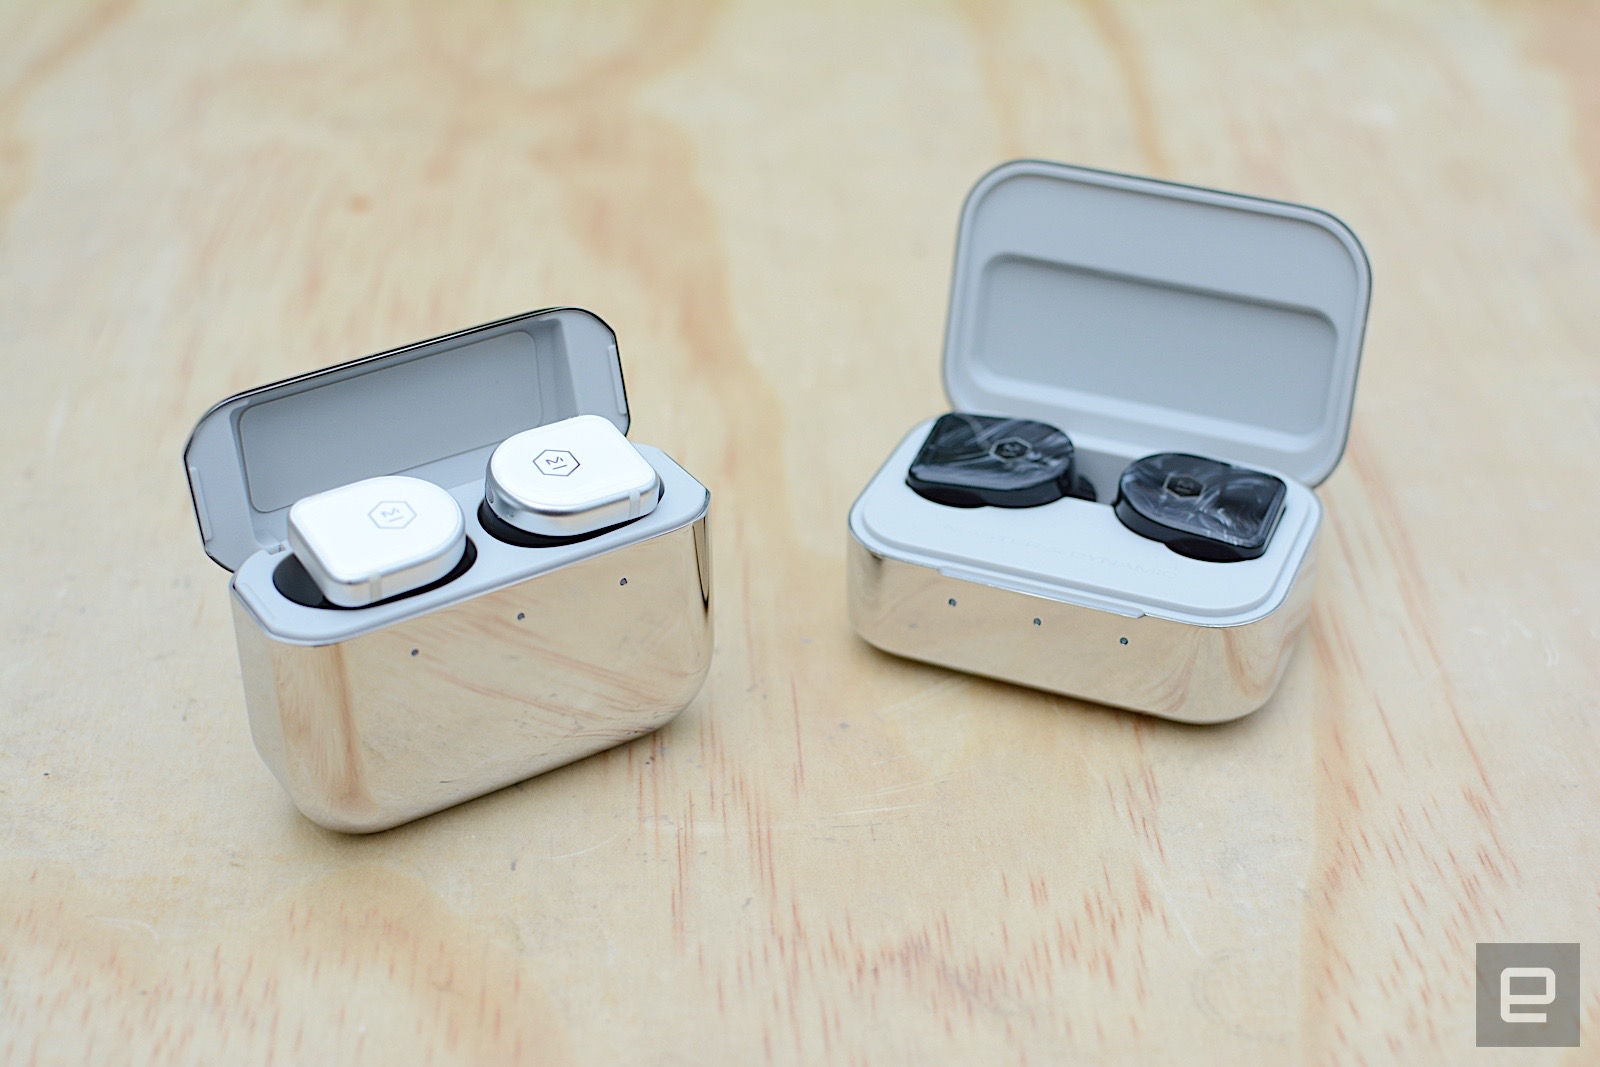 <p>With its latest true wireless earbuds, Master &amp; Dynamic continues to refine its initial design. The company improved its natural, even-tuned trademark sound to create audio quality normally reserved for over-ear headphones. There are some minor gripes, but M&amp;D covers nearly all of the bases for its latest flagship earbuds, which are undoubtedly the company's best yet.</p>